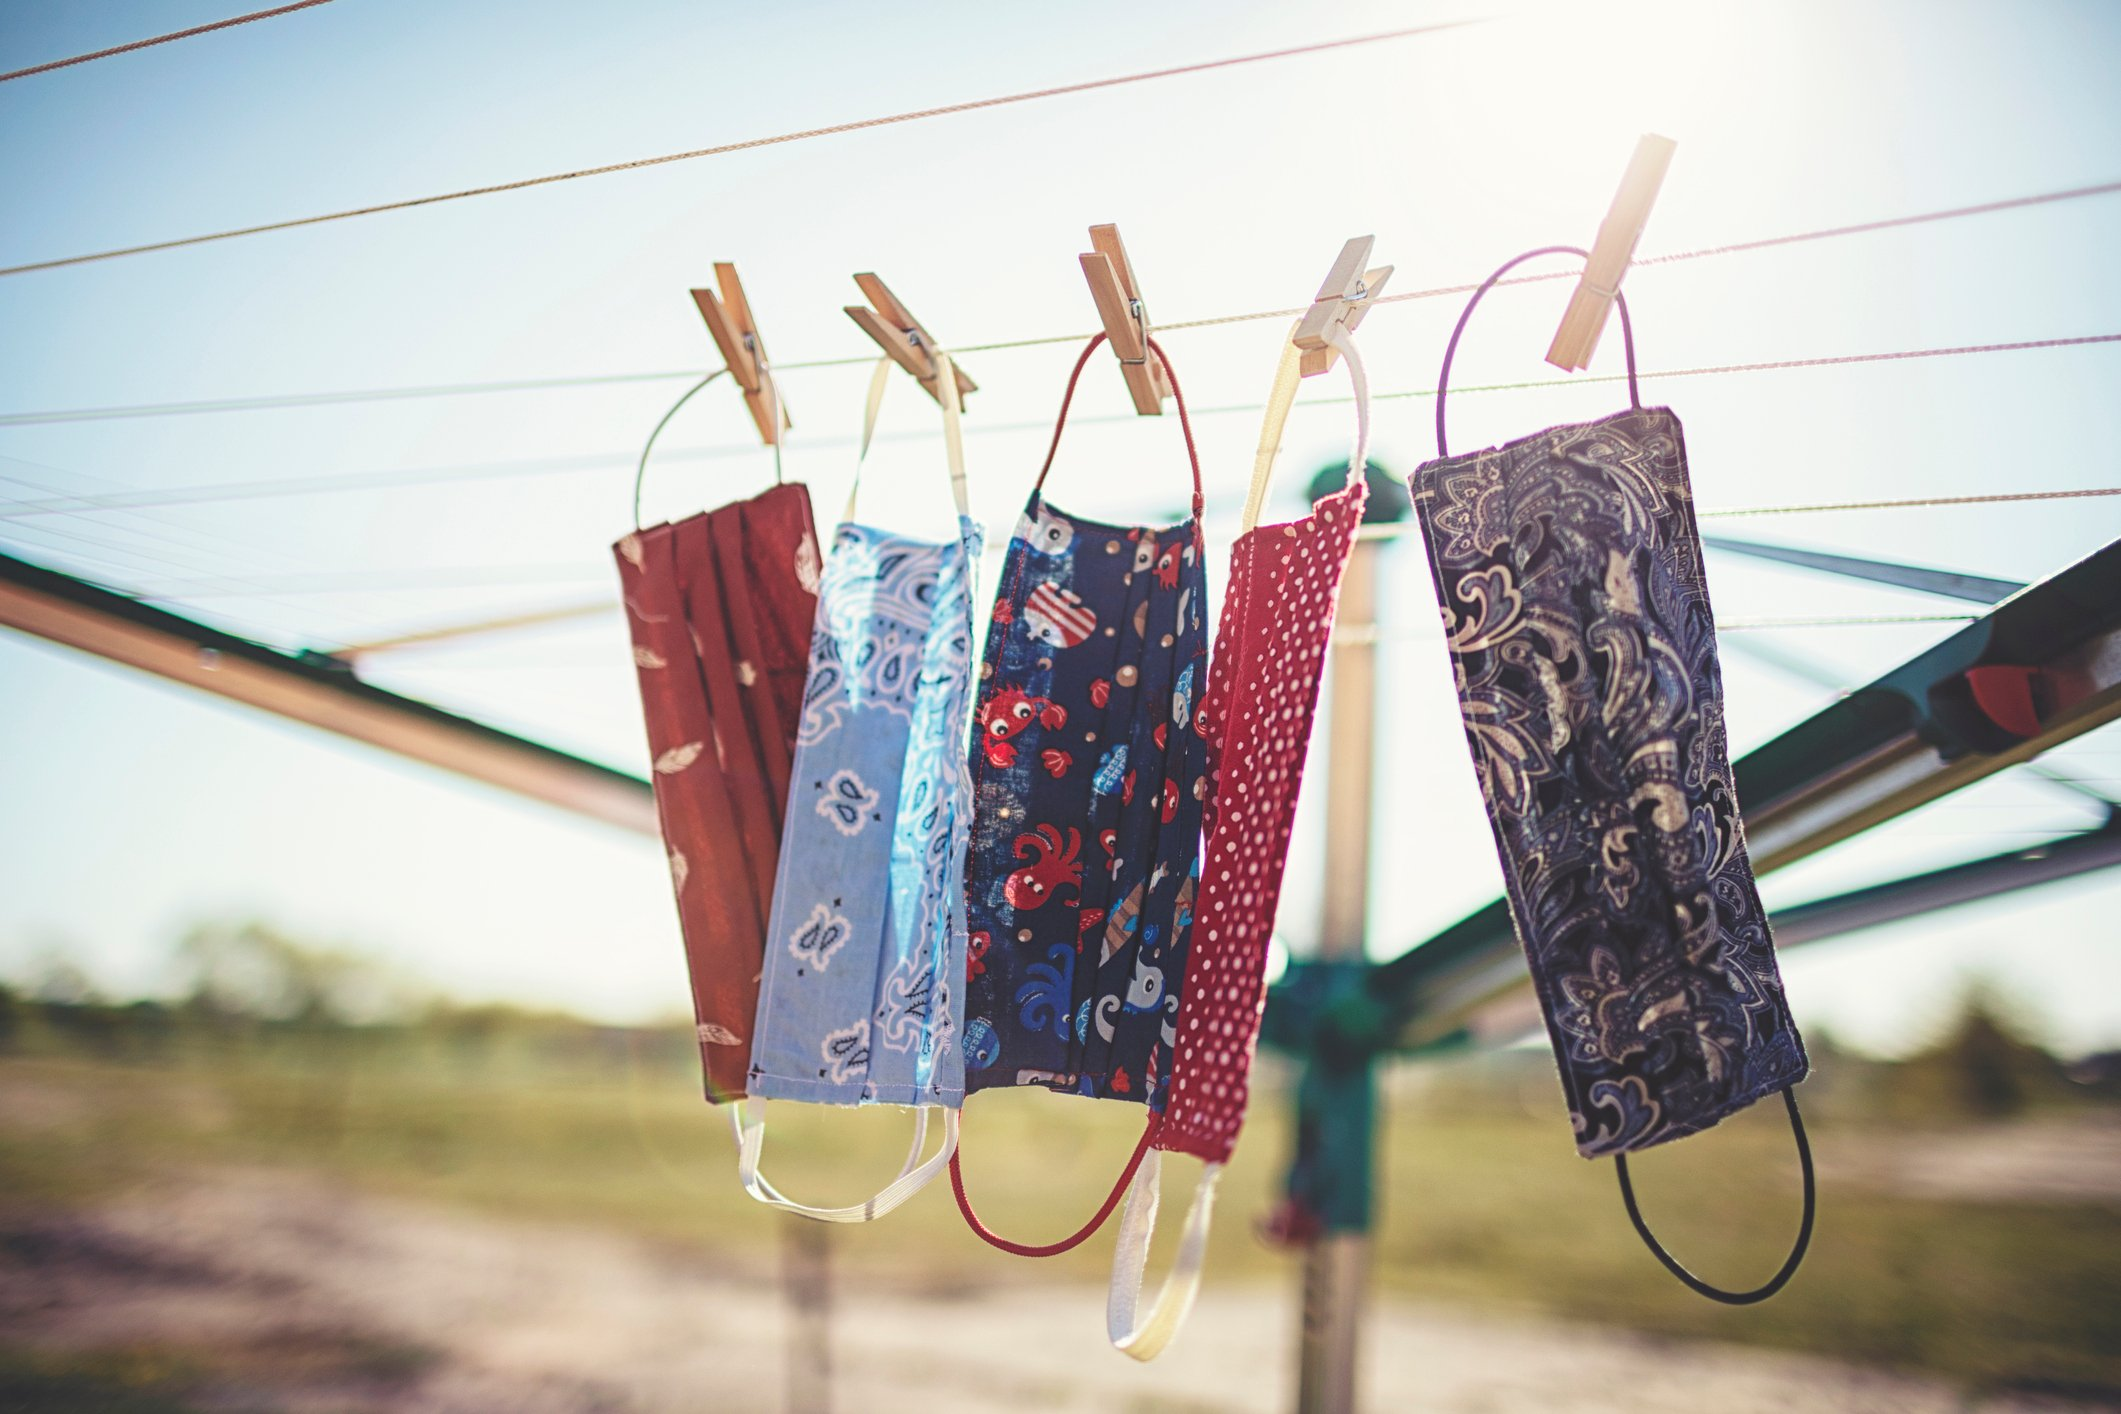 If you hang your mask on the clothesline to dry, wait at least 48 hours before you use it again. (iStock Photo)